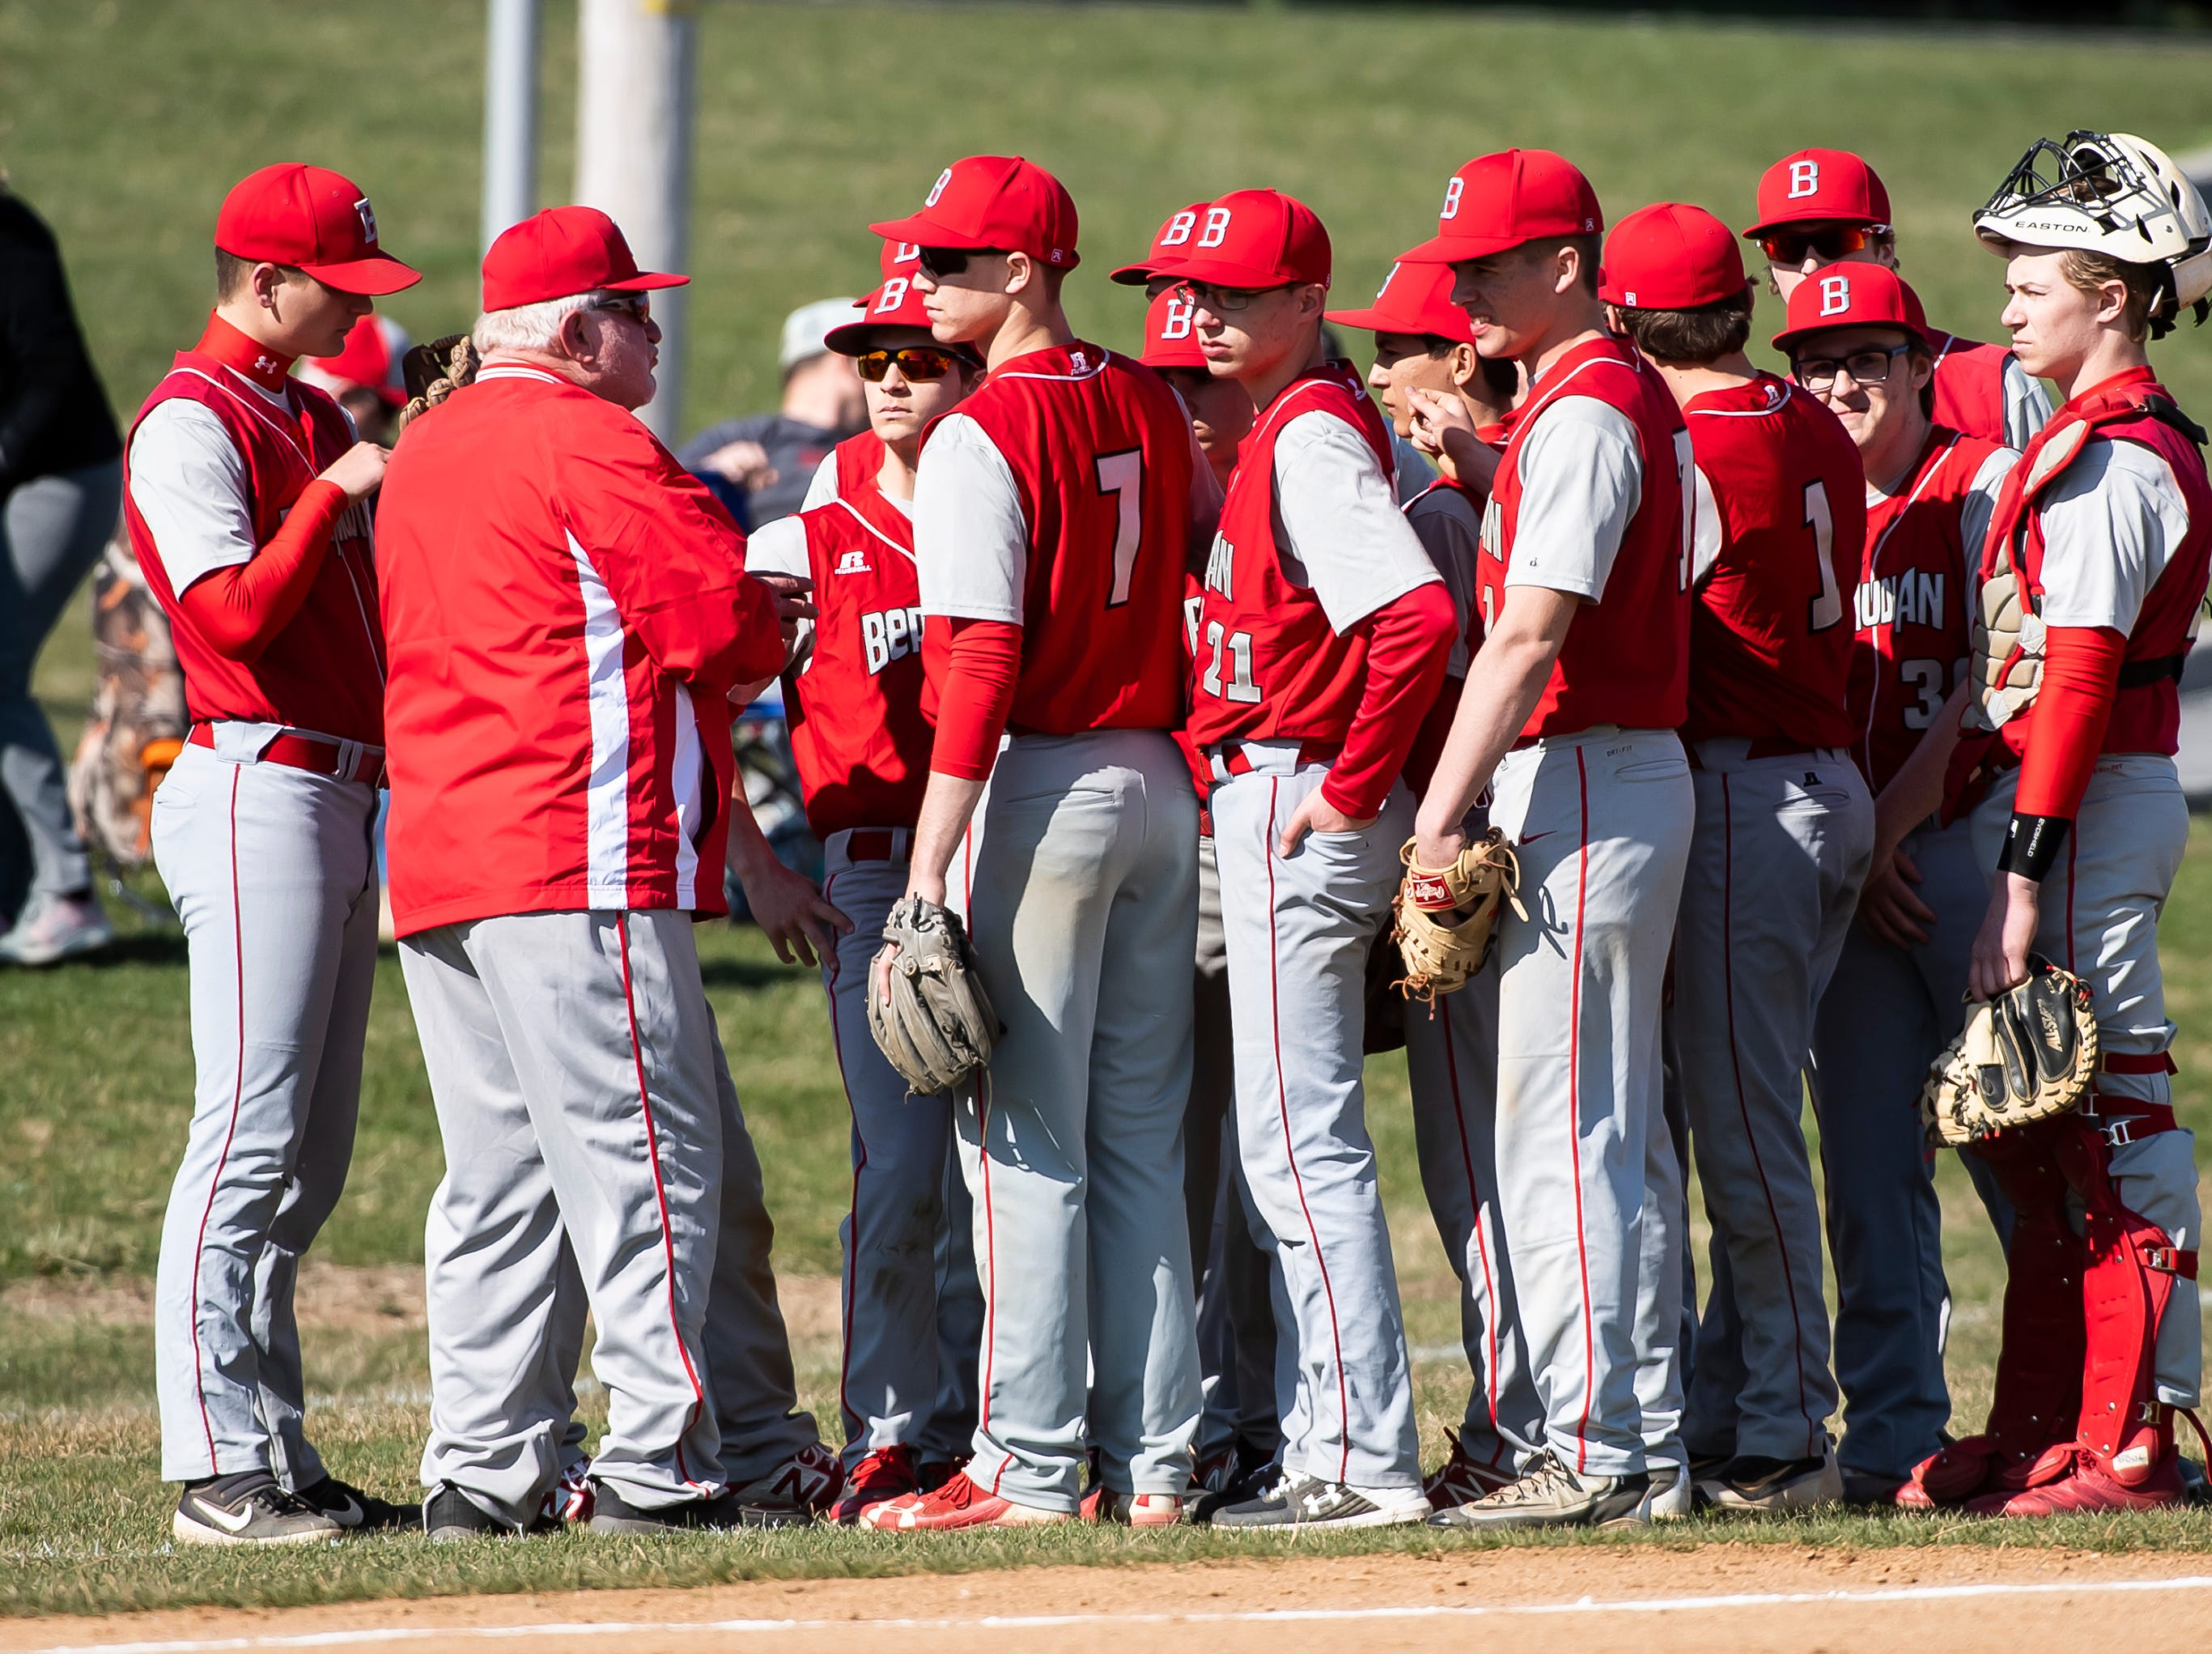 Bermudian Springs baseball head coach Bruce Reinert, left, speaks with his team before the start of a YAIAA game against West York on Wednesday, April 3, 2019. The Eagles fell 14-11.